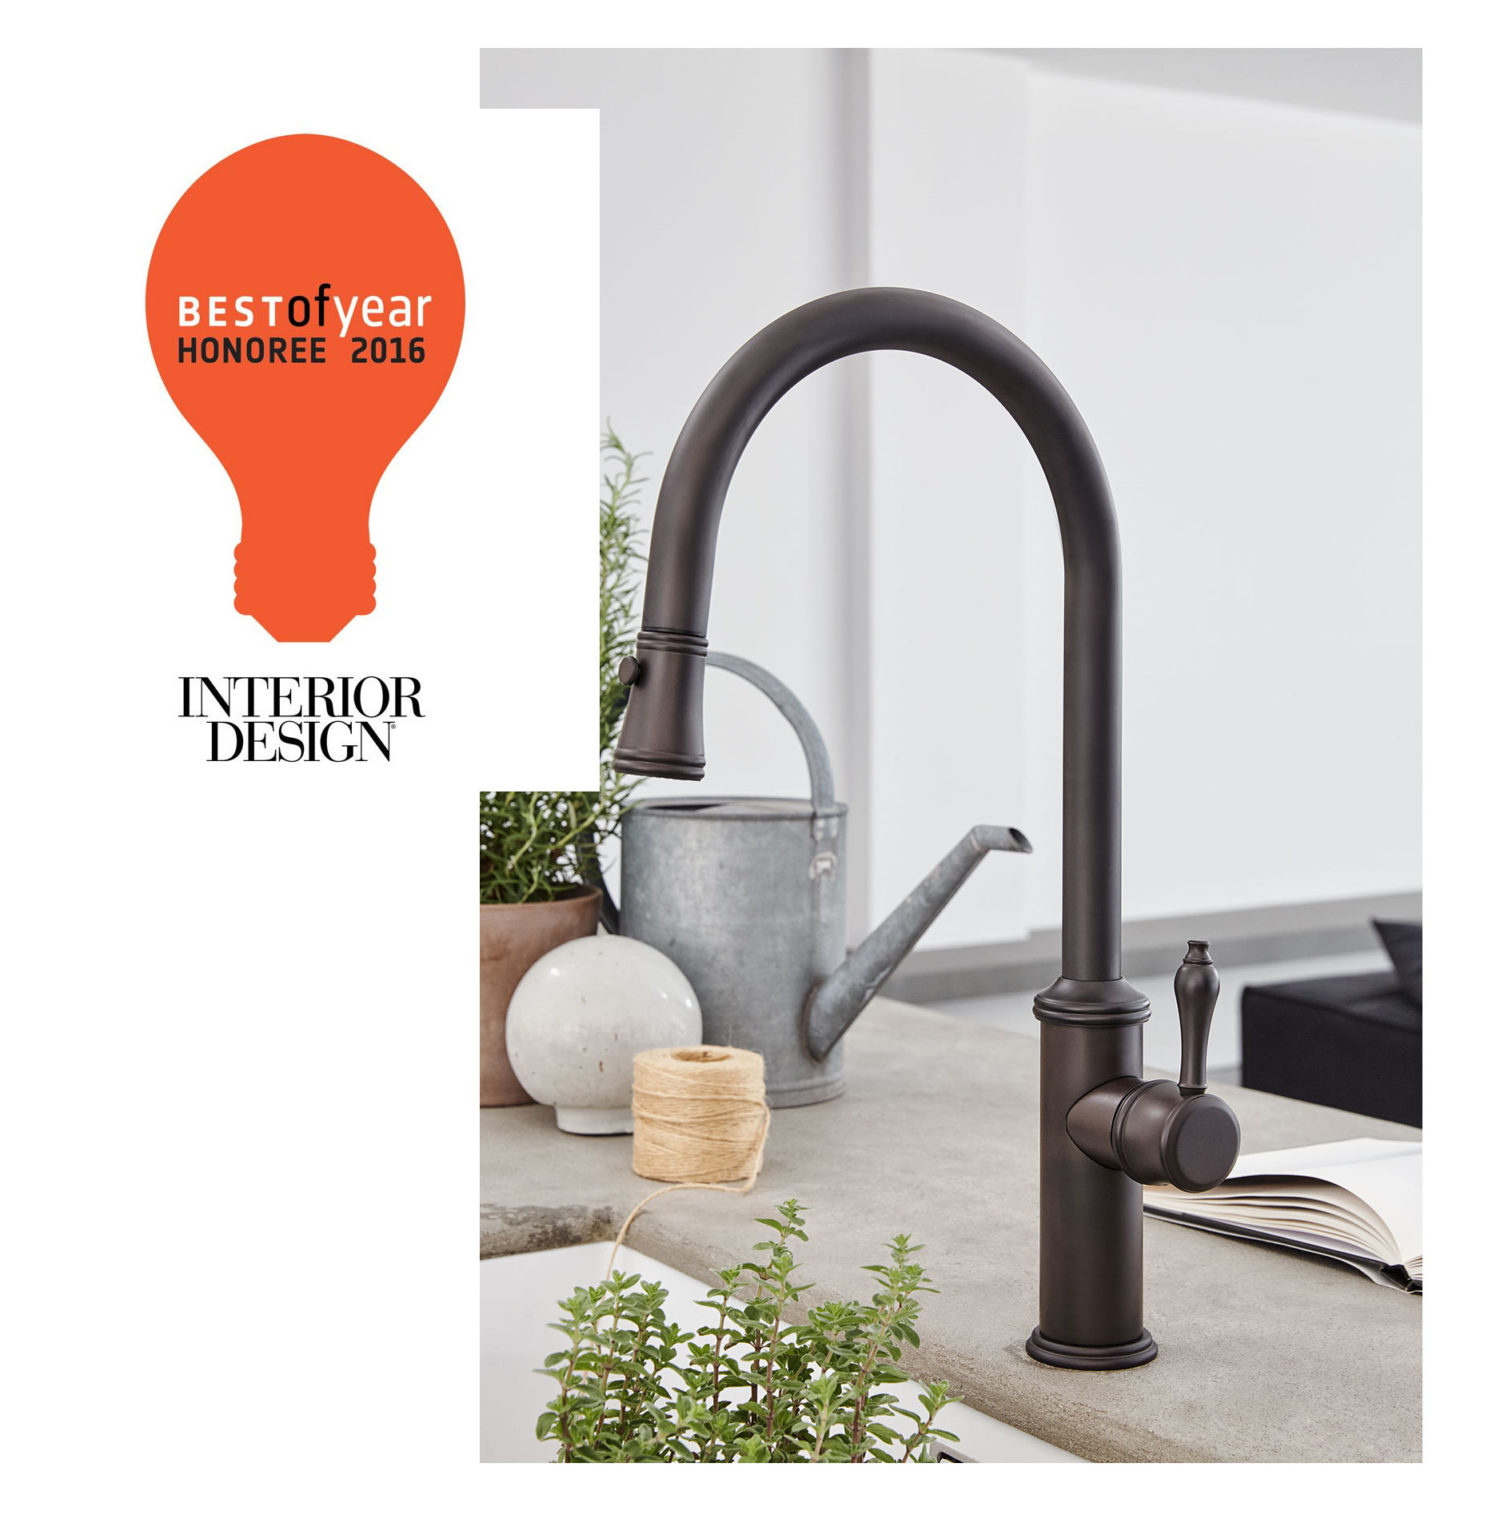 Interior Design Best of Year 2016 Honoree logo overlay on Davoli pull down kitchen faucet